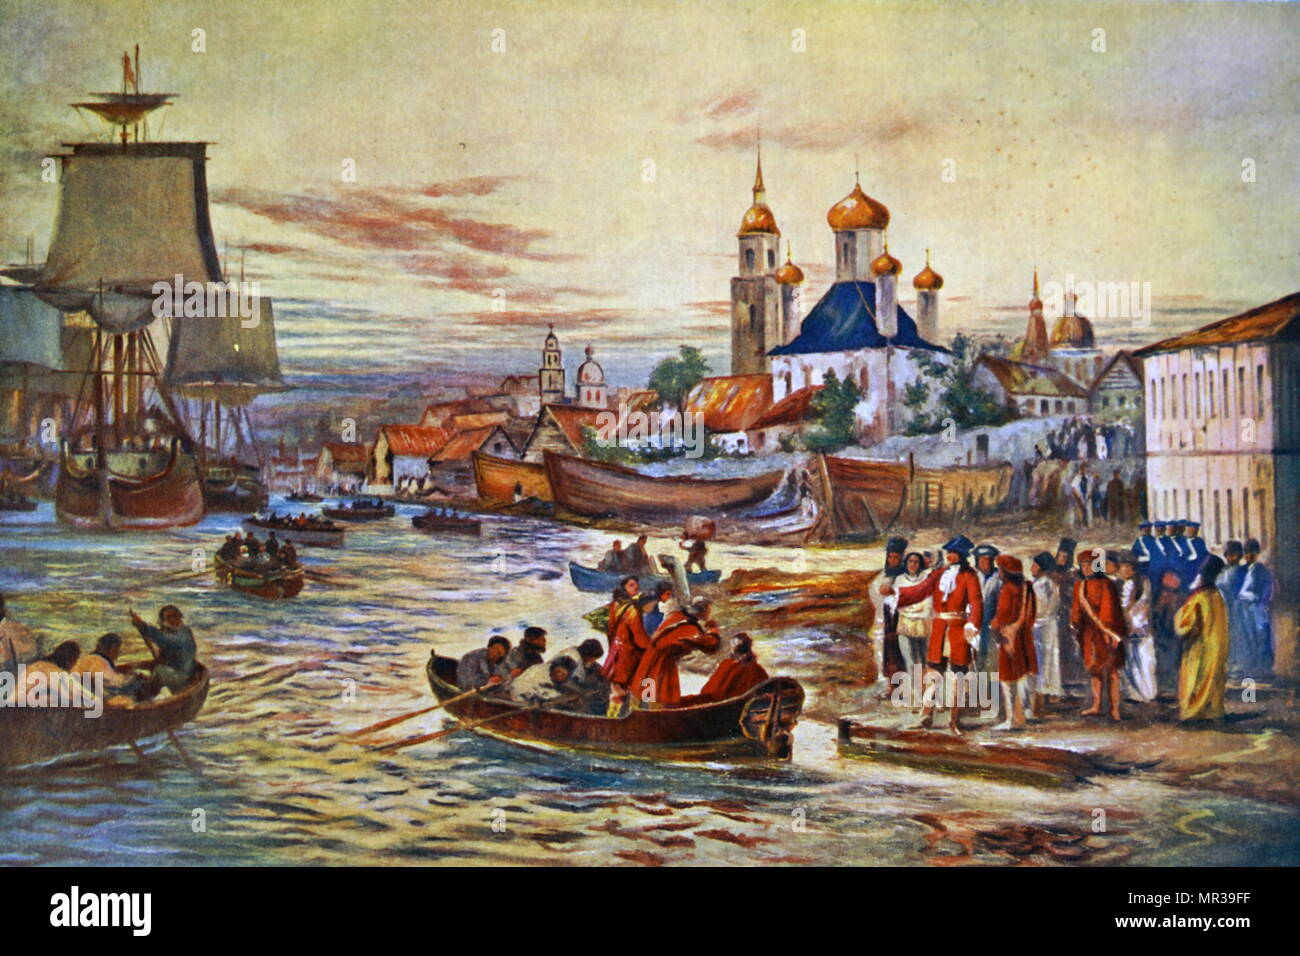 Painting depicting Peter the Great's naval preparations. Peter the Great ( 1672-1725) ruler of the Tsardom of Russia and later the Russian Empire.